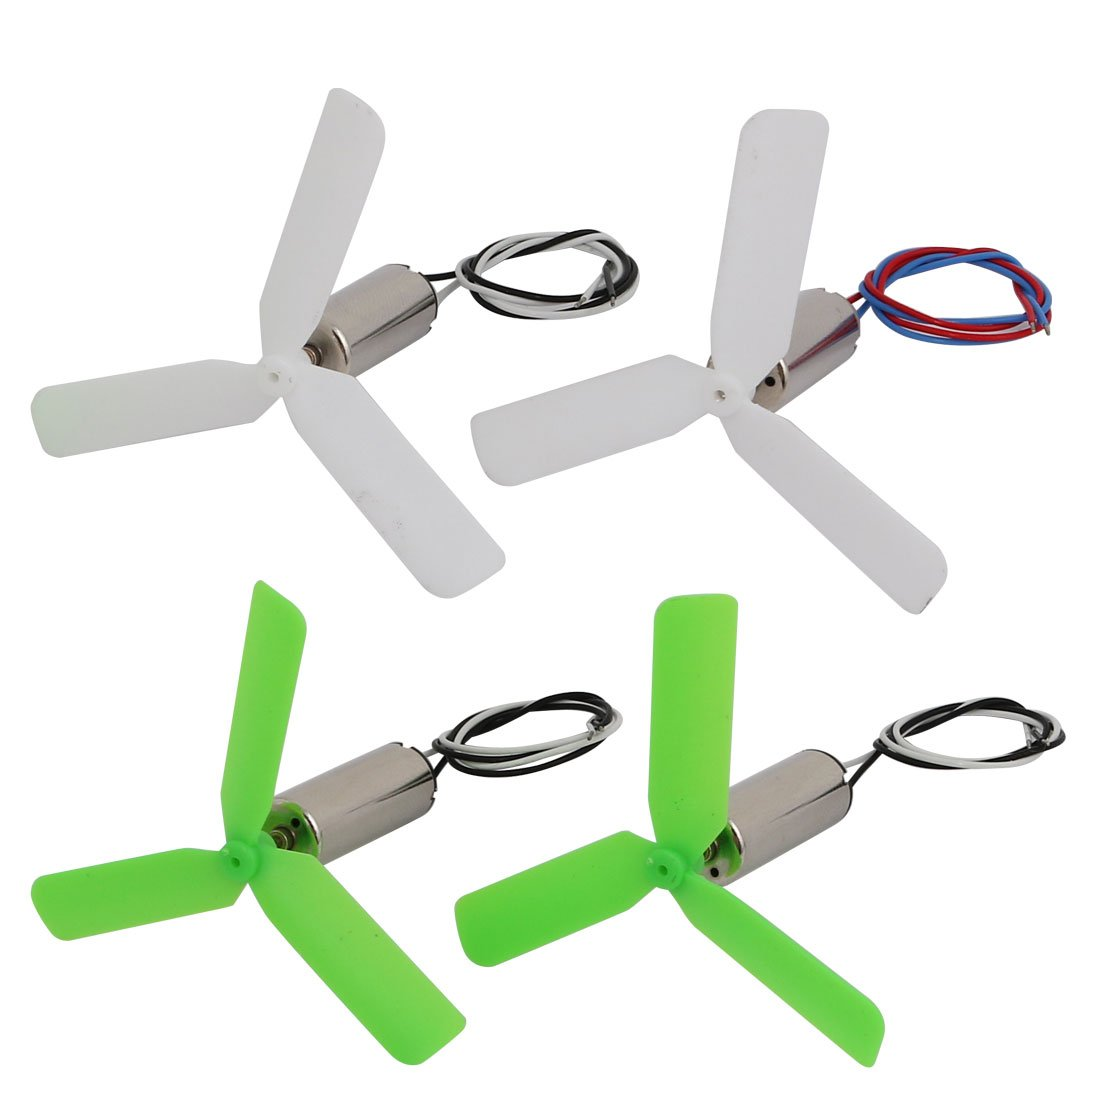 uxcell 2pair DC 3.4V 26000RPM 7mm x 20mm Motor w Green White 3-Vanes CW CCW Propeller